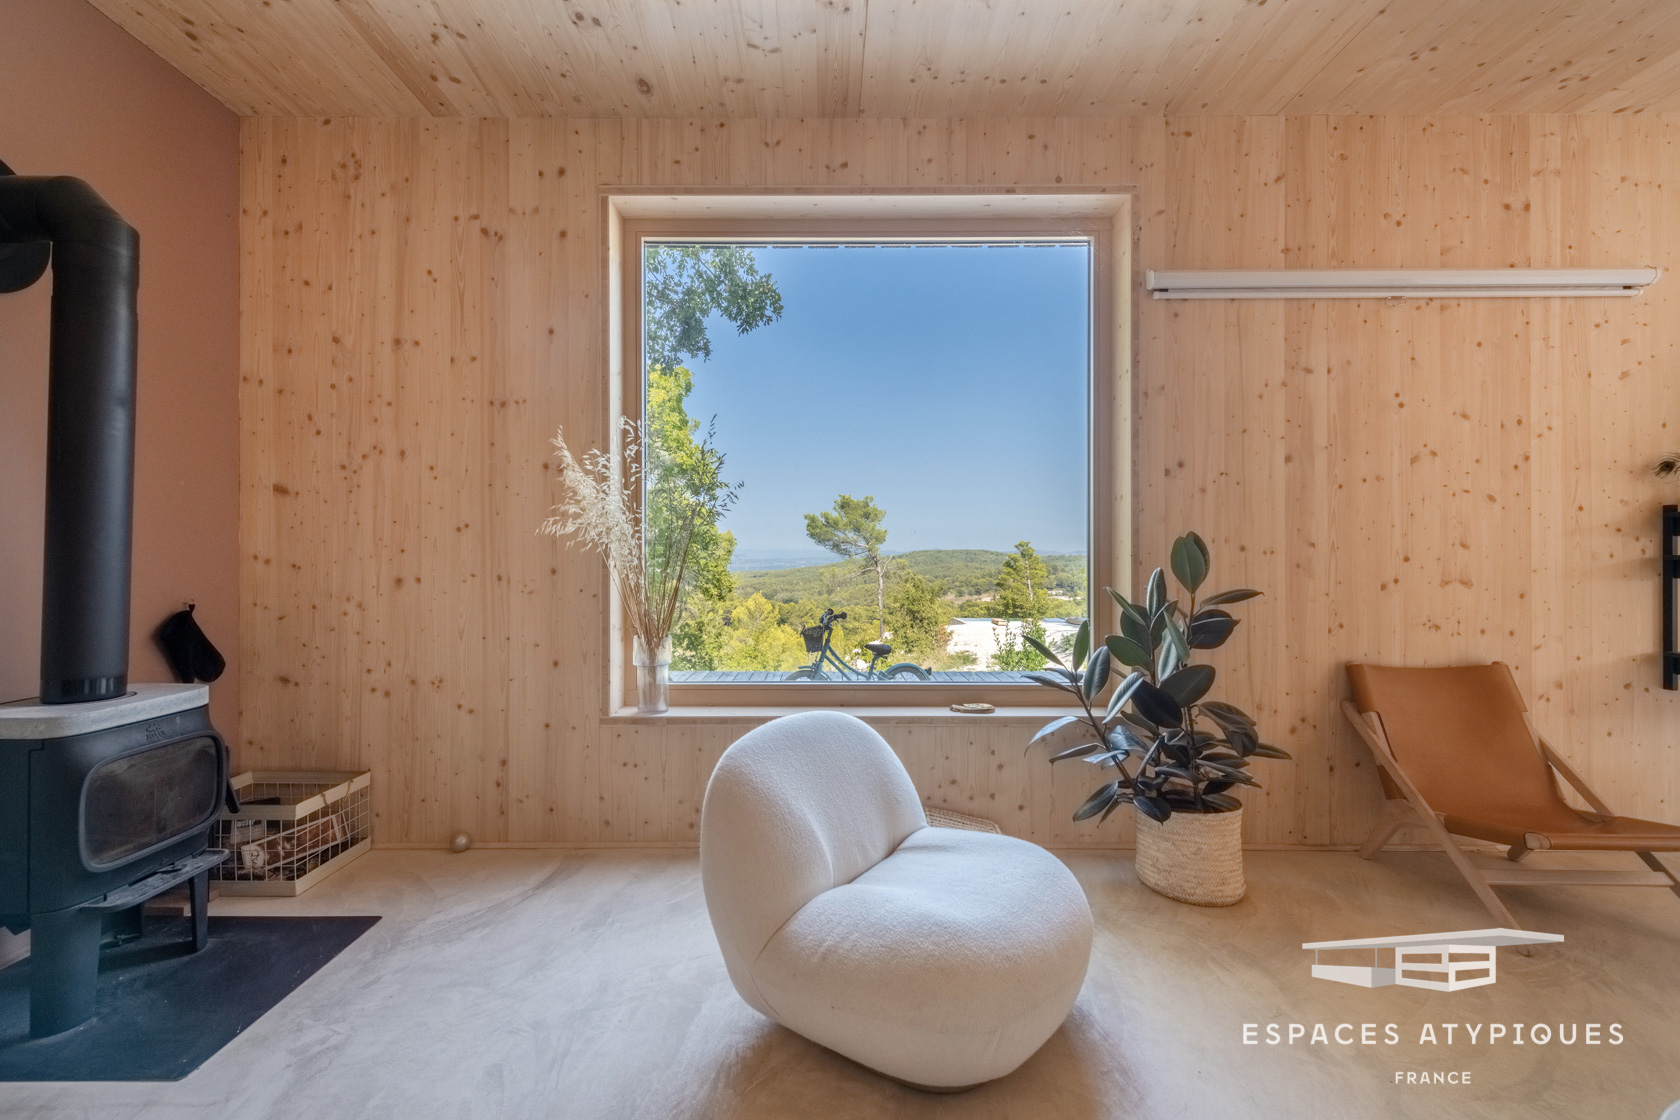 A Shou Sugi Ban country cabin asks for €1.2m in France's Aix-en-Provence